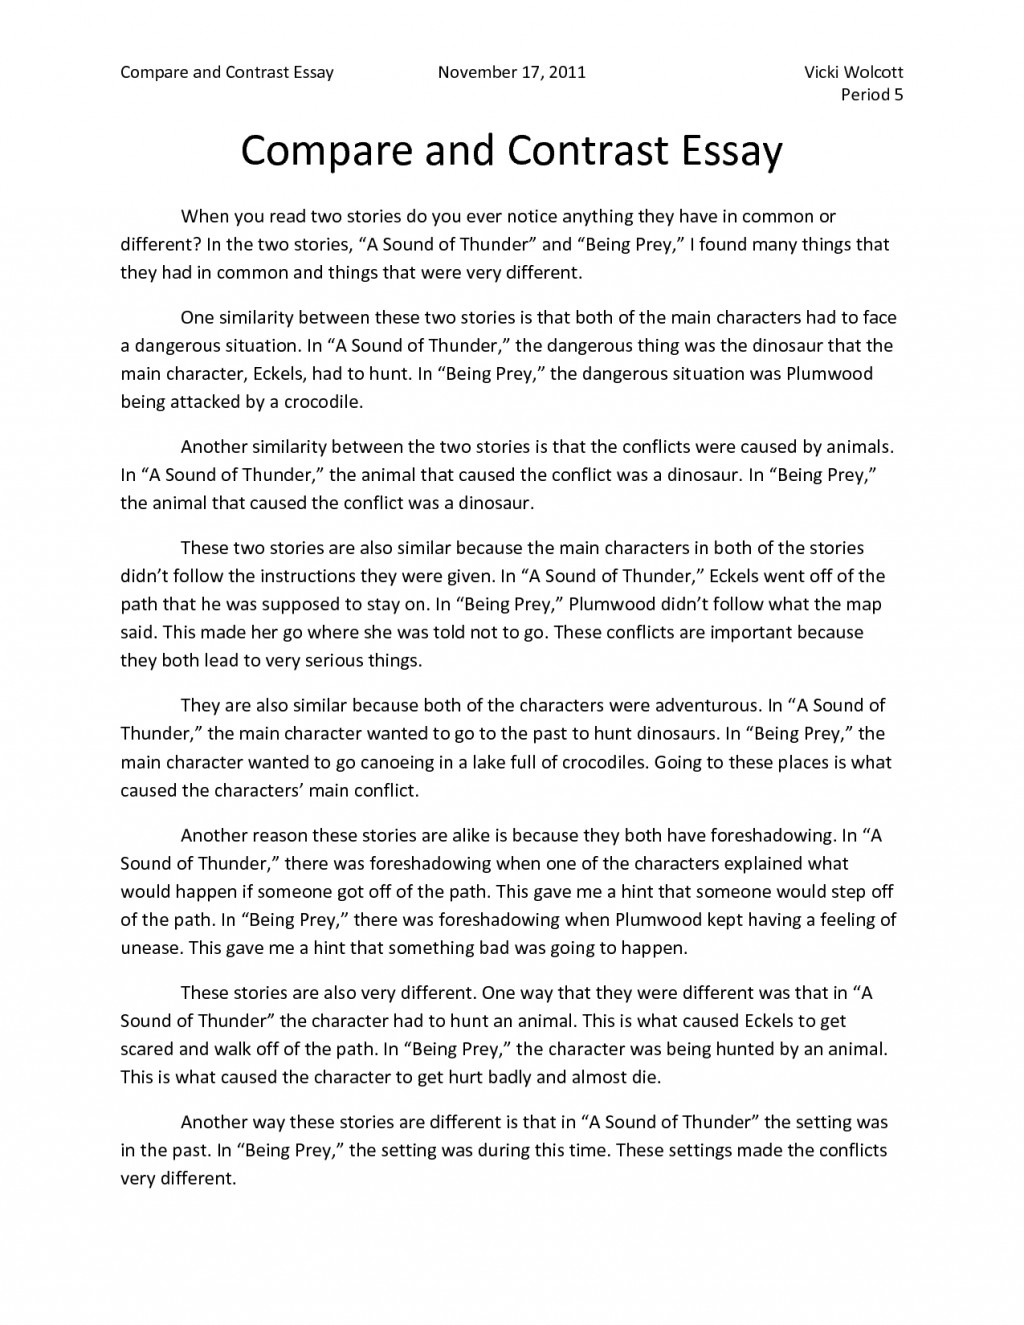 010 Essay Example Compare Good Cover Letter Samples Comparative Outlinend Contrast Made Large Flexib Sample Pdf Writing How To Conclude Fantastic A And Start Comparison Write Begin Large